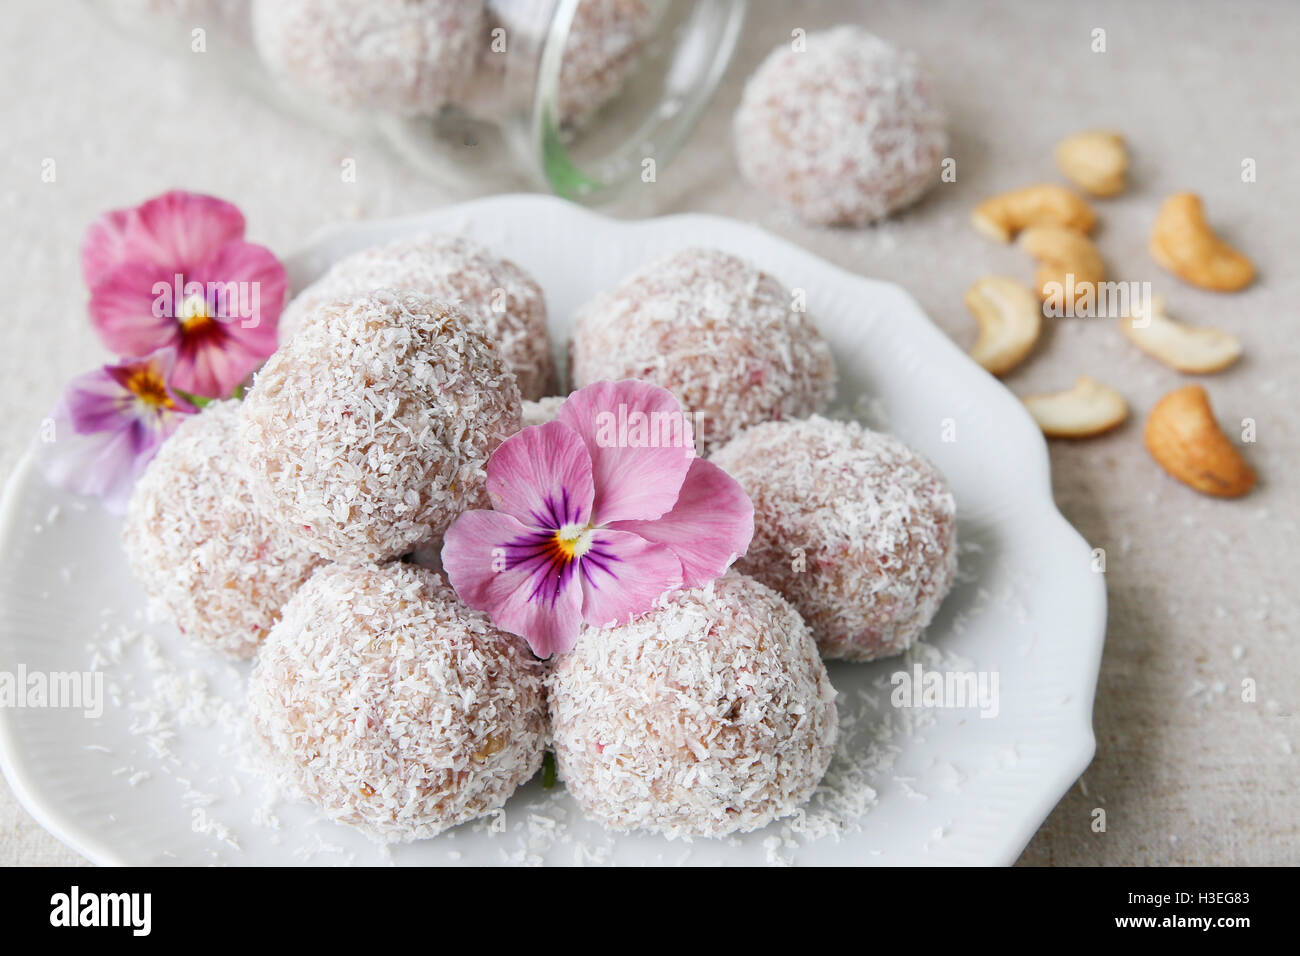 Homemade strawberry, date, cashew and coconut bliss ball with edible flowers - Stock Image